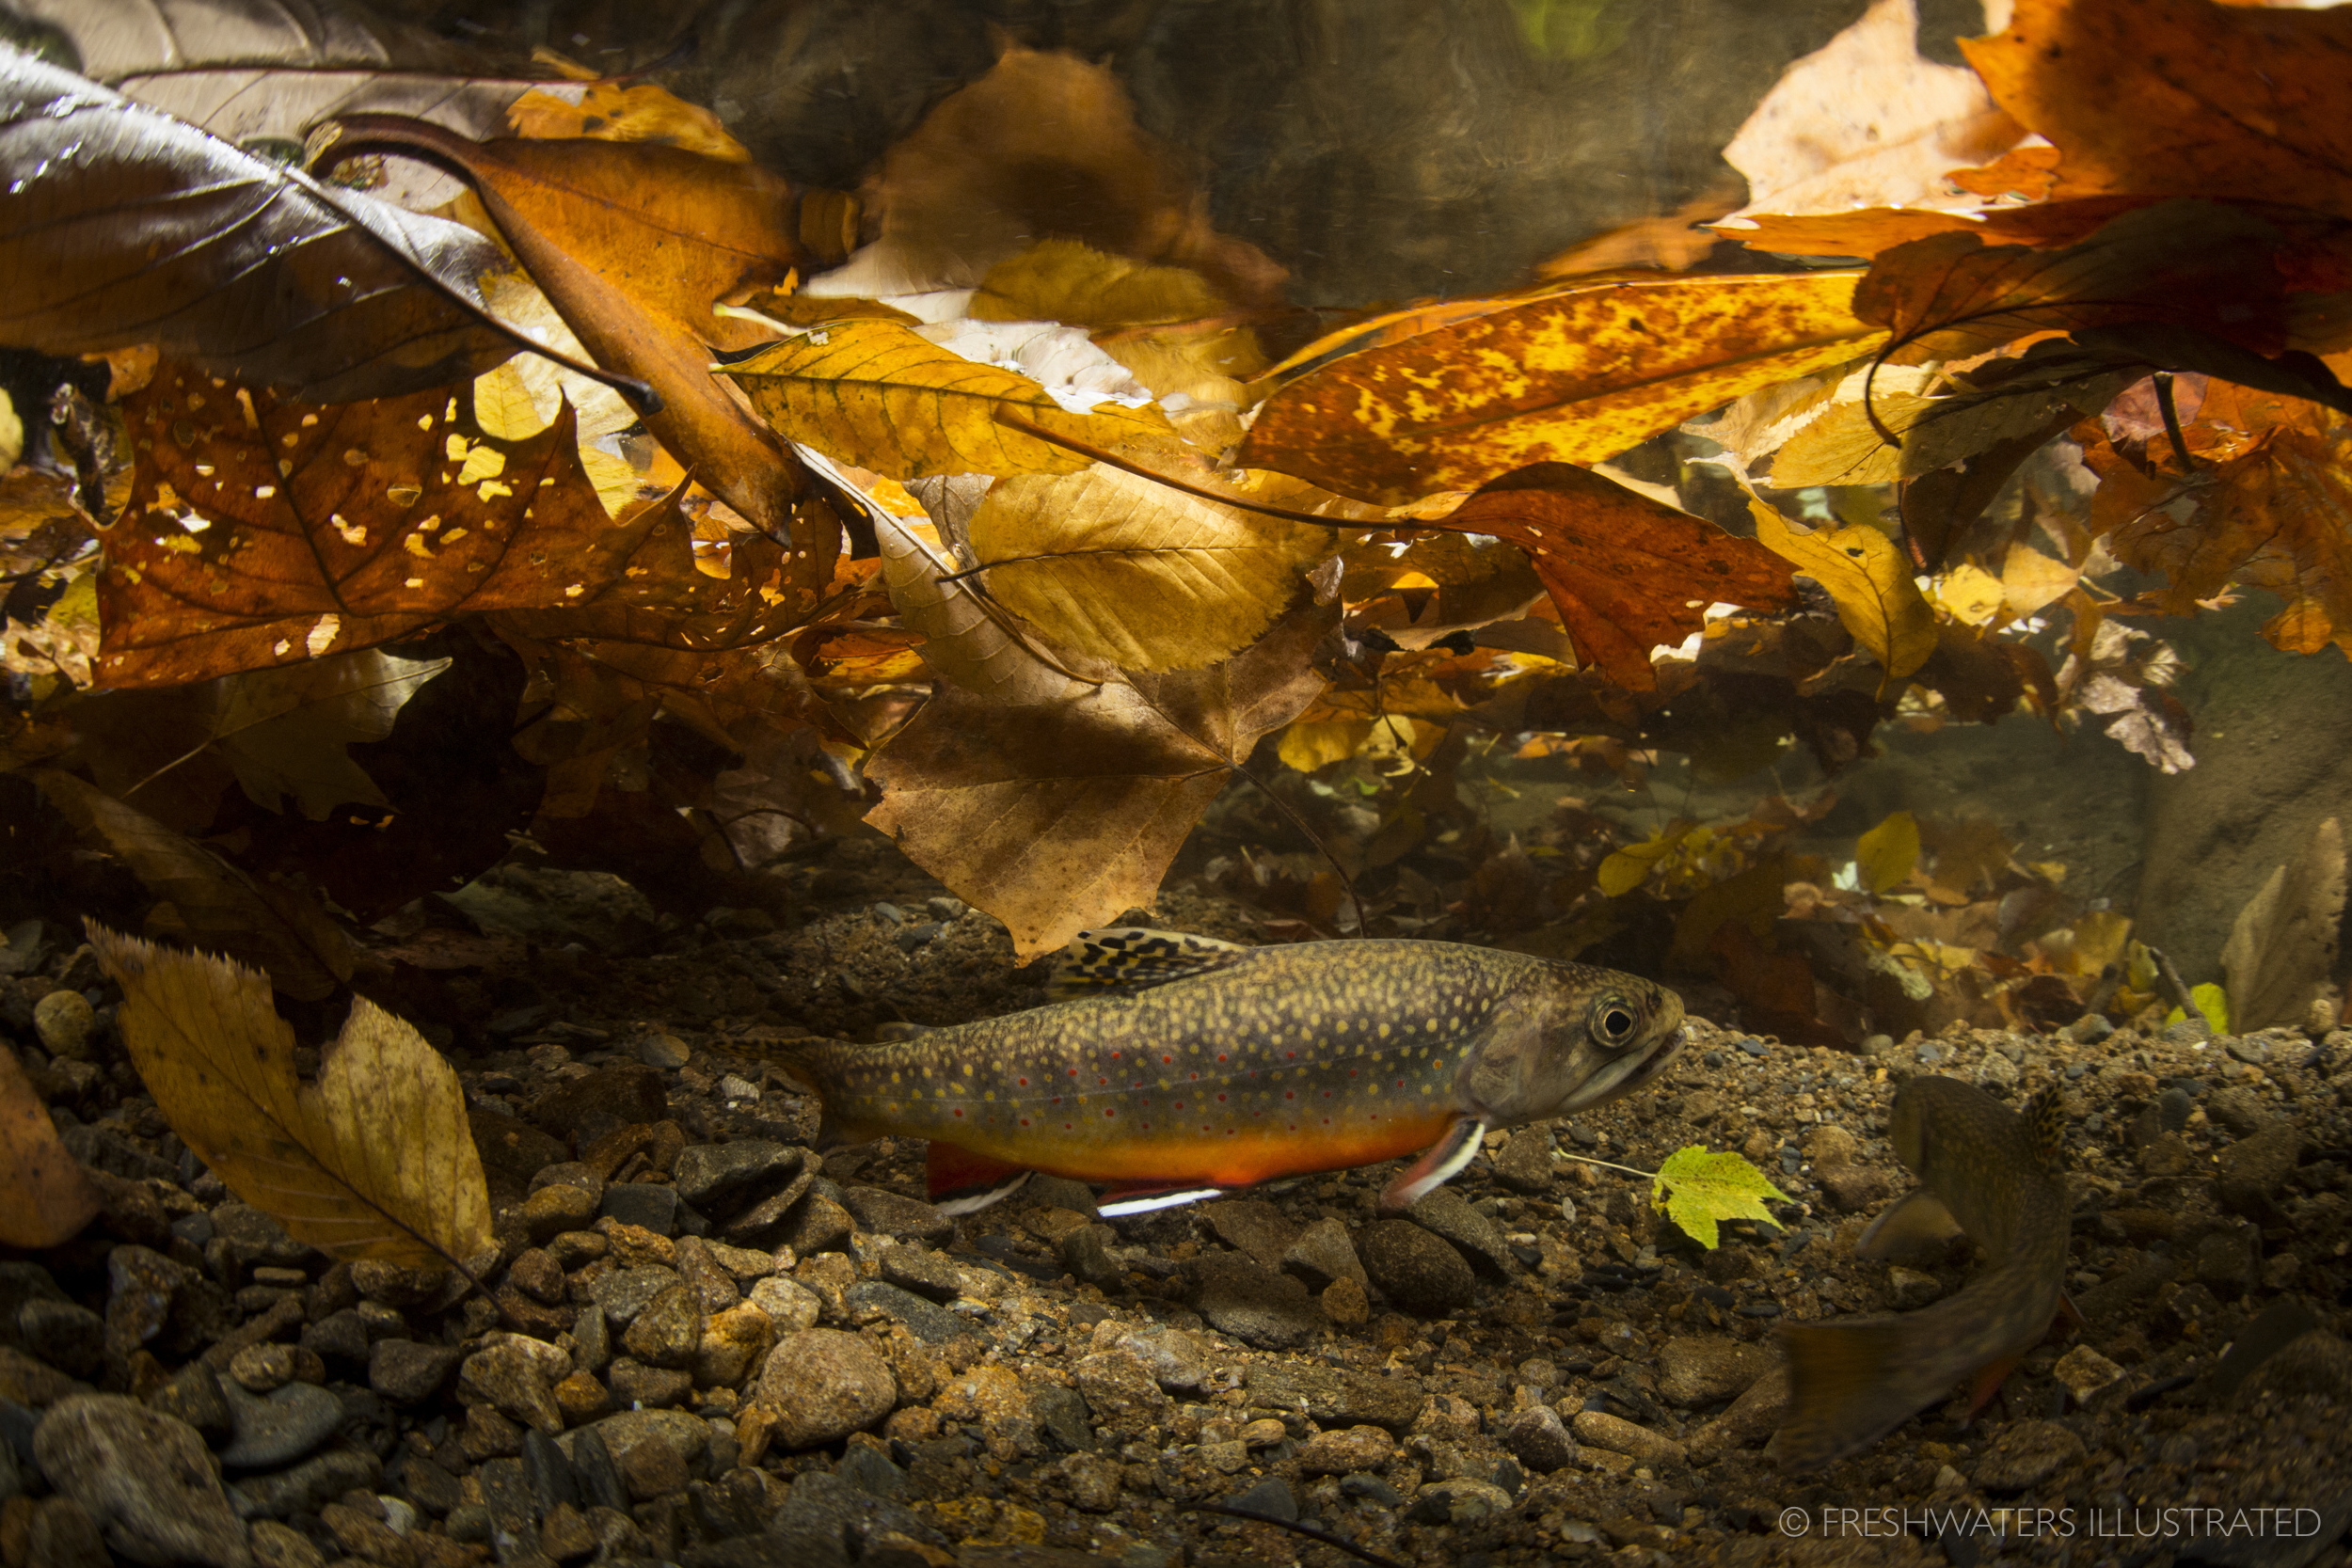 Hidden beneath a layer of freshly fallen leaves a pair of Southern Appalachian brook trout perform their annual mating courtship in the Great Smoky Mountains National Park. Nearly wiped out, these iconic fish are now making a comeback. Smoky Mountain National Park, Tennessee  www.FreshwatersIllustrated.org